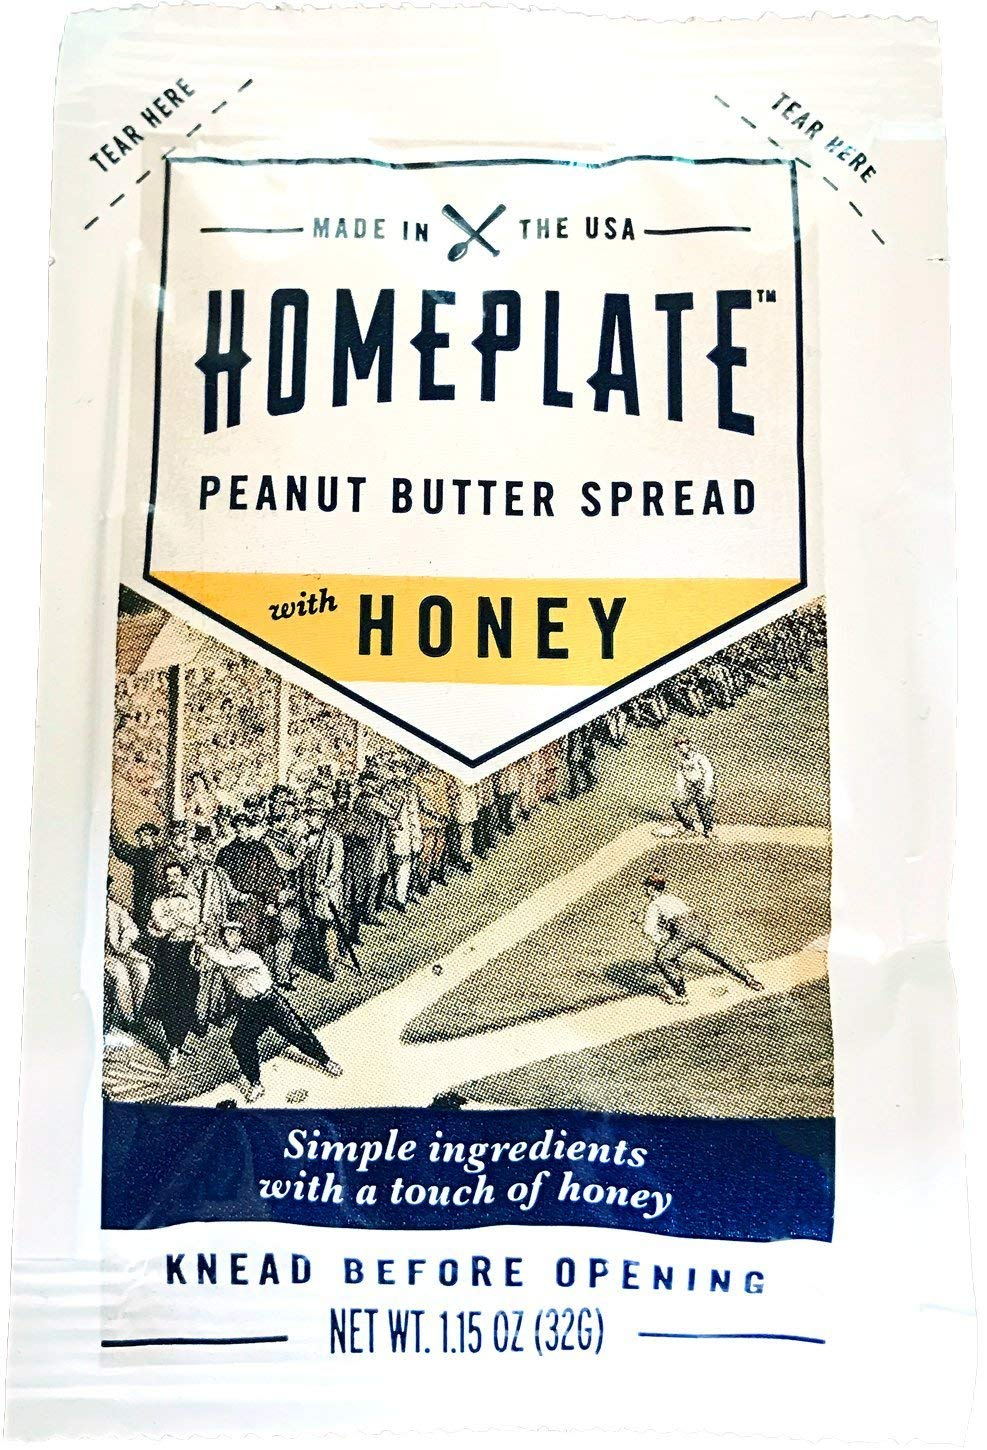 HomePlate Peanut Butter On-the-Go Squeeze Pack, Honey Flavored Creamy, All Natural, No Stir, Non-GMO, 1.15 oz. squeeze pack, 1 Unit